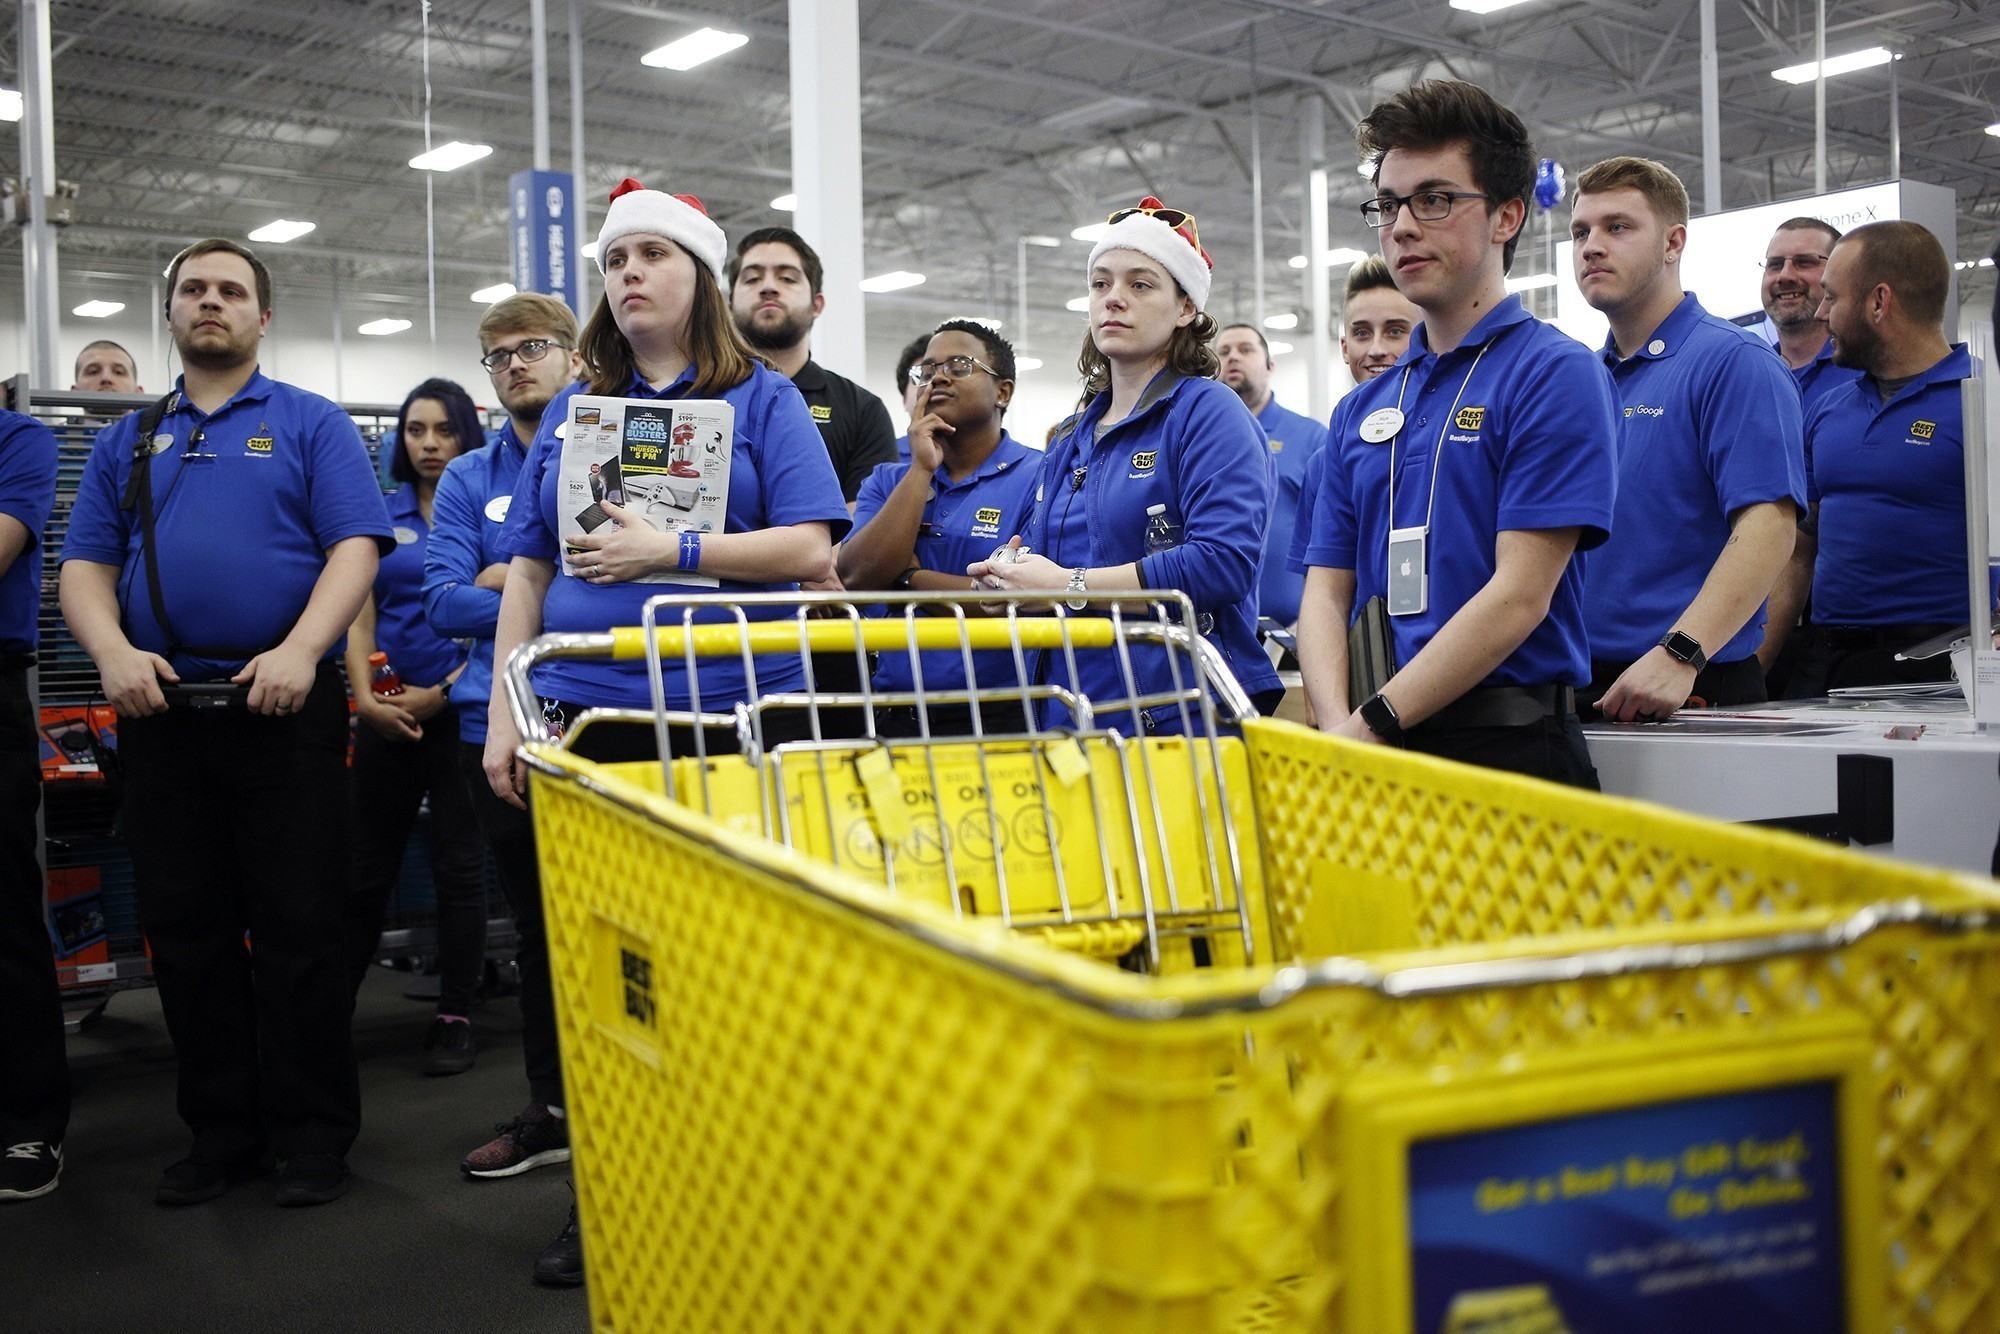 Retail Jobs In Usa Takes A Disastrous Dip, Europe To pertaining to National Retail Federation 4 5 4 Calendar